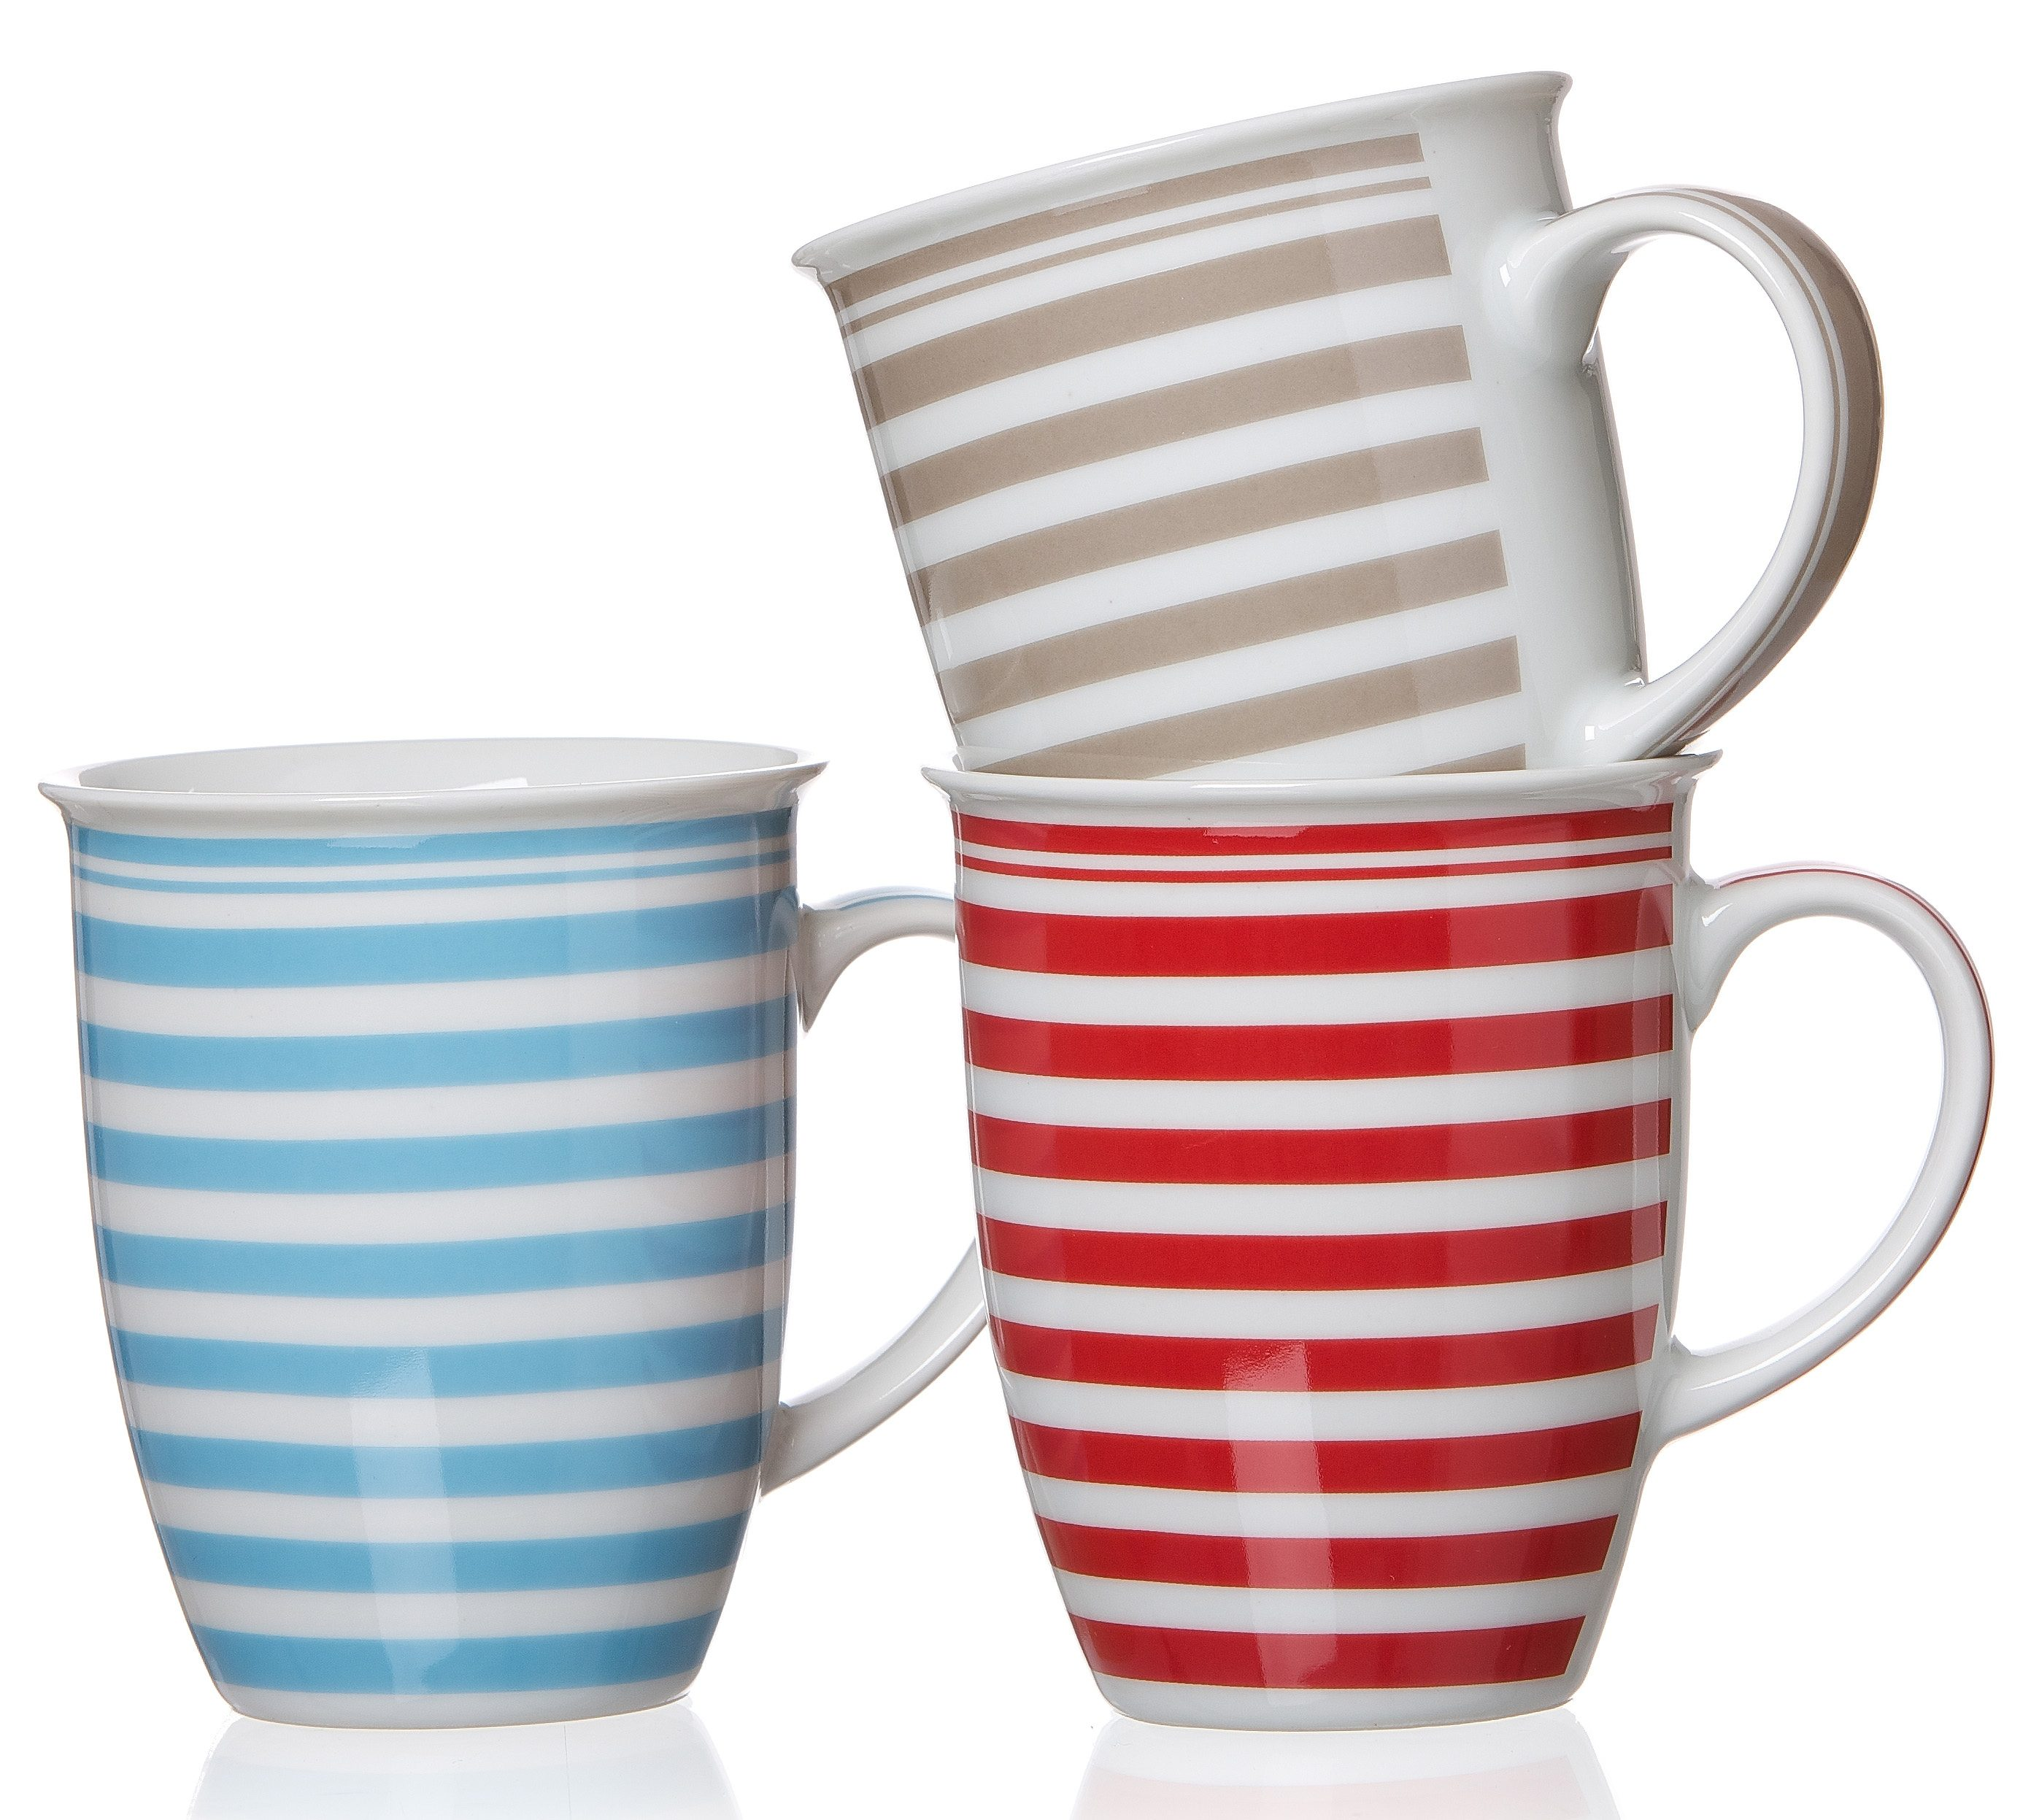 Flirt by R&B Kaffeebecher-Set Porzellan, »Modern Stripes«